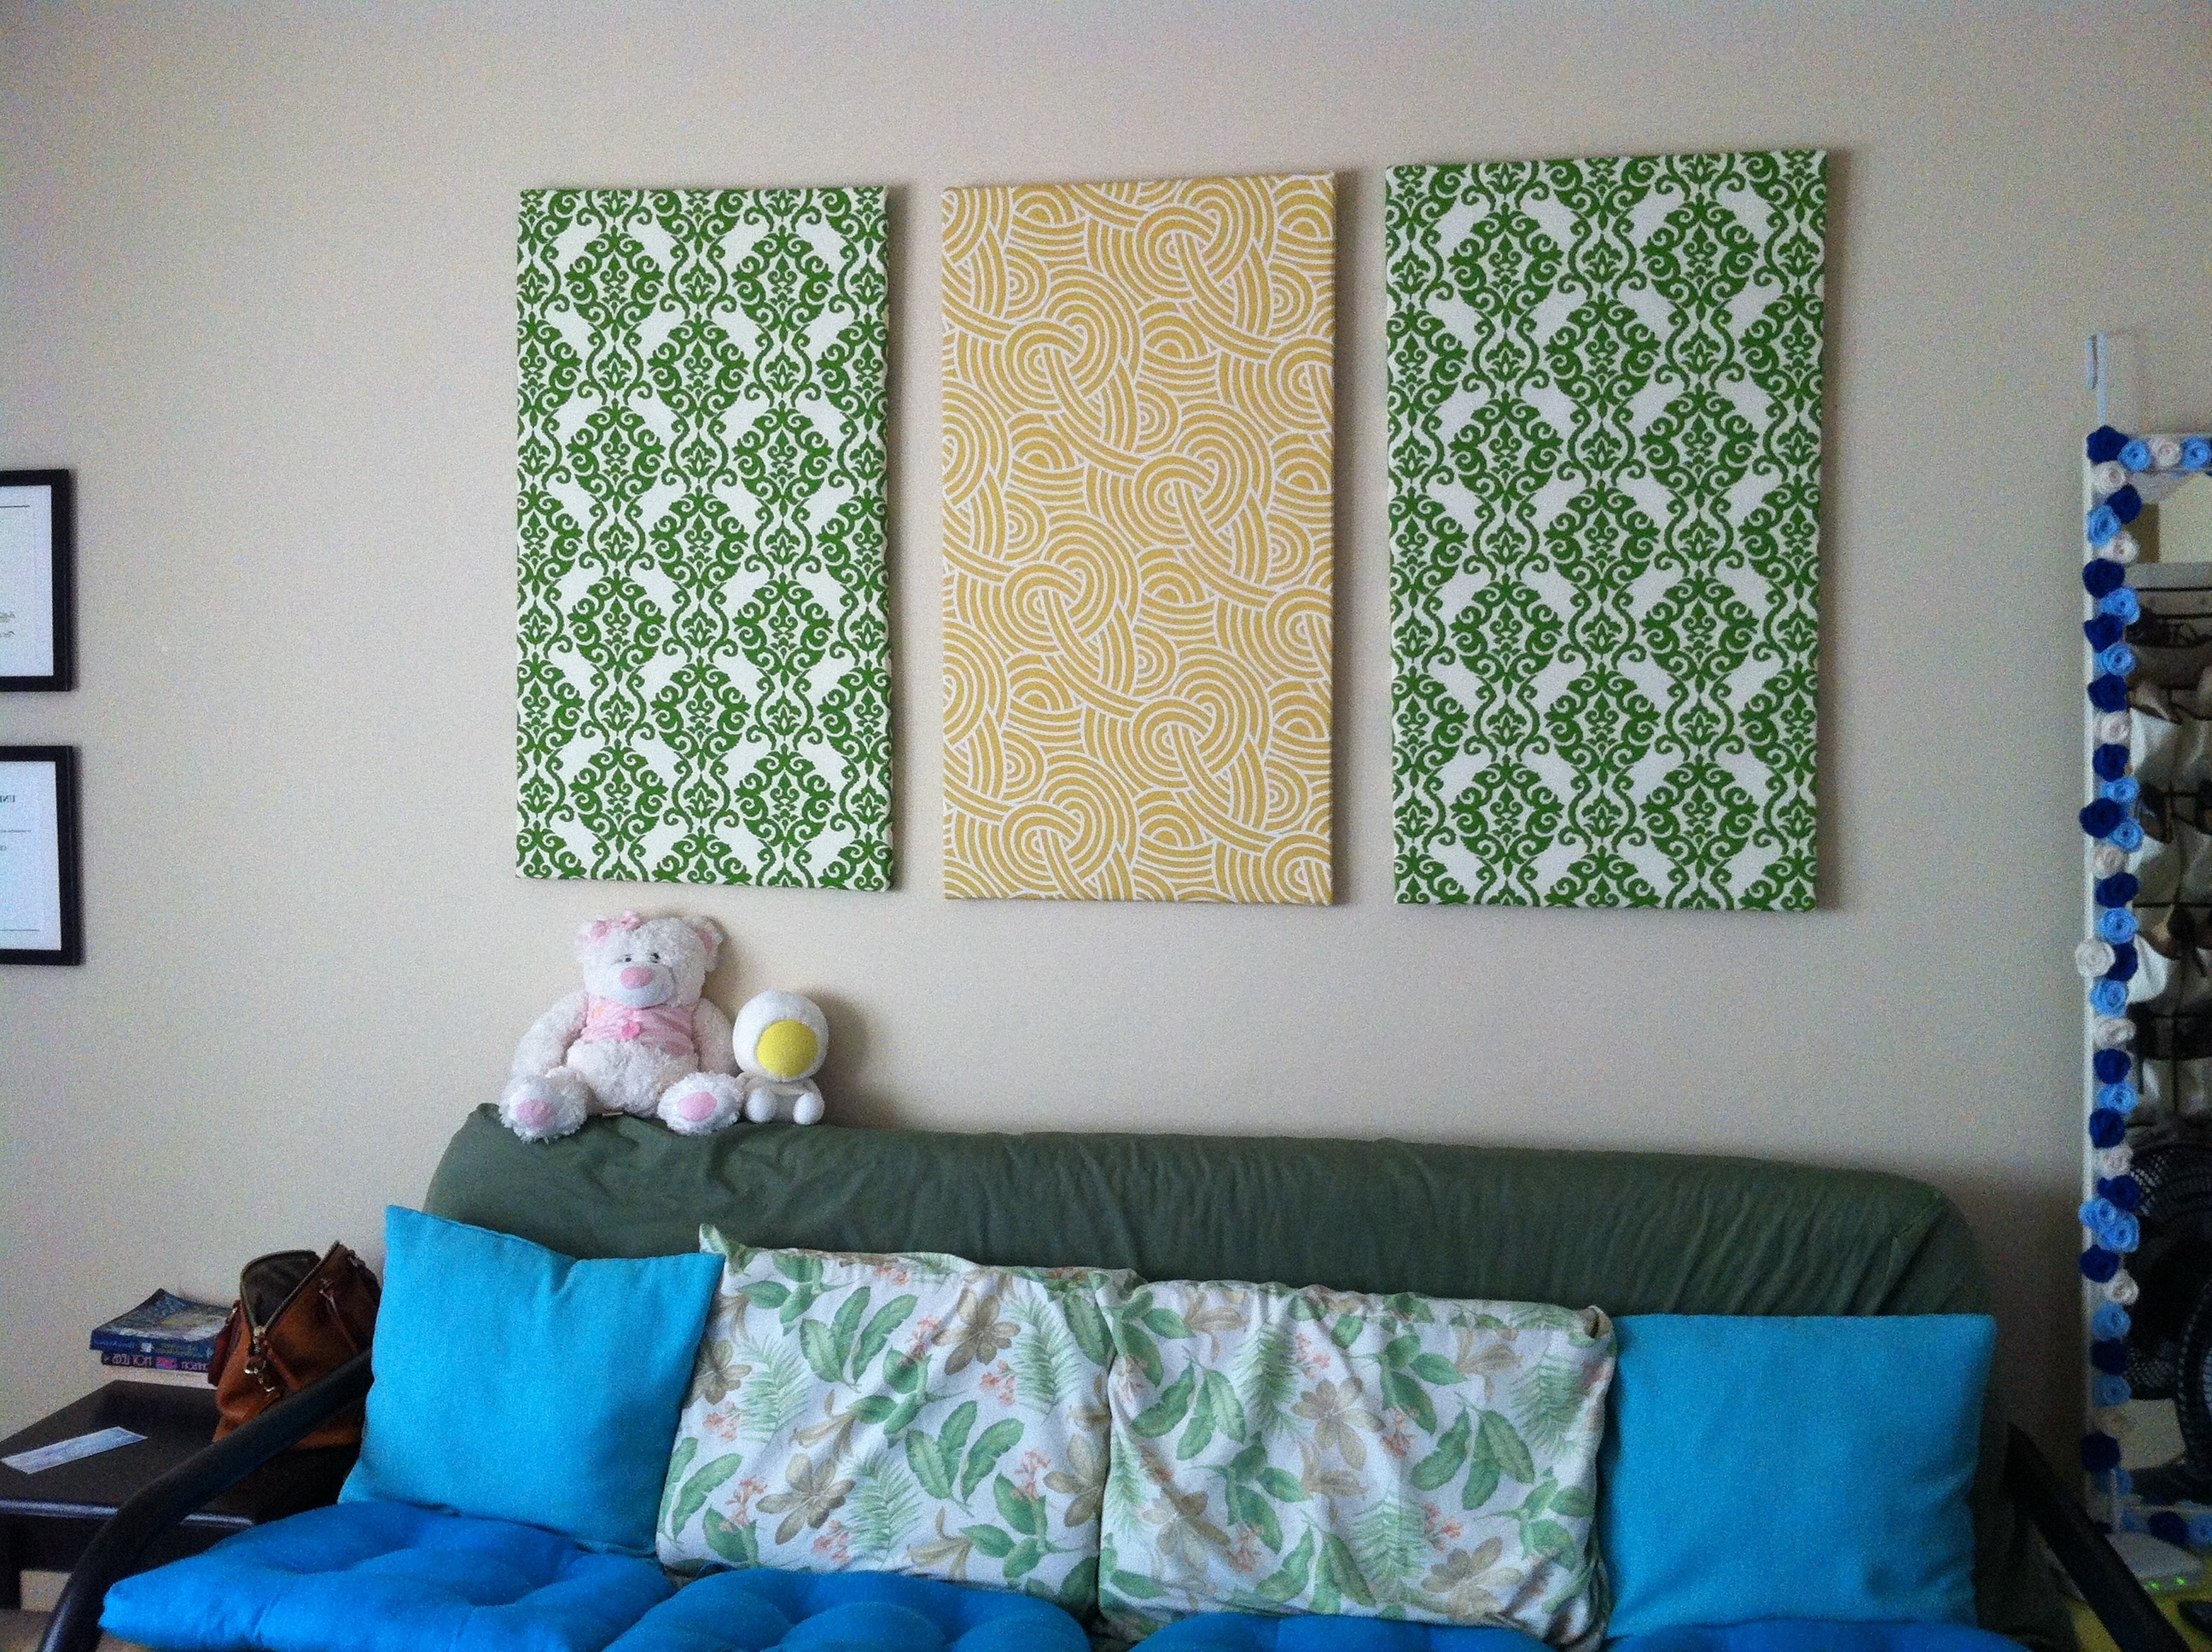 Lovely Decoration Fabric Wall Art How To Make Outdoor Video Pertaining To Well Known Outdoor Fabric Wall Art (Gallery 9 of 15)